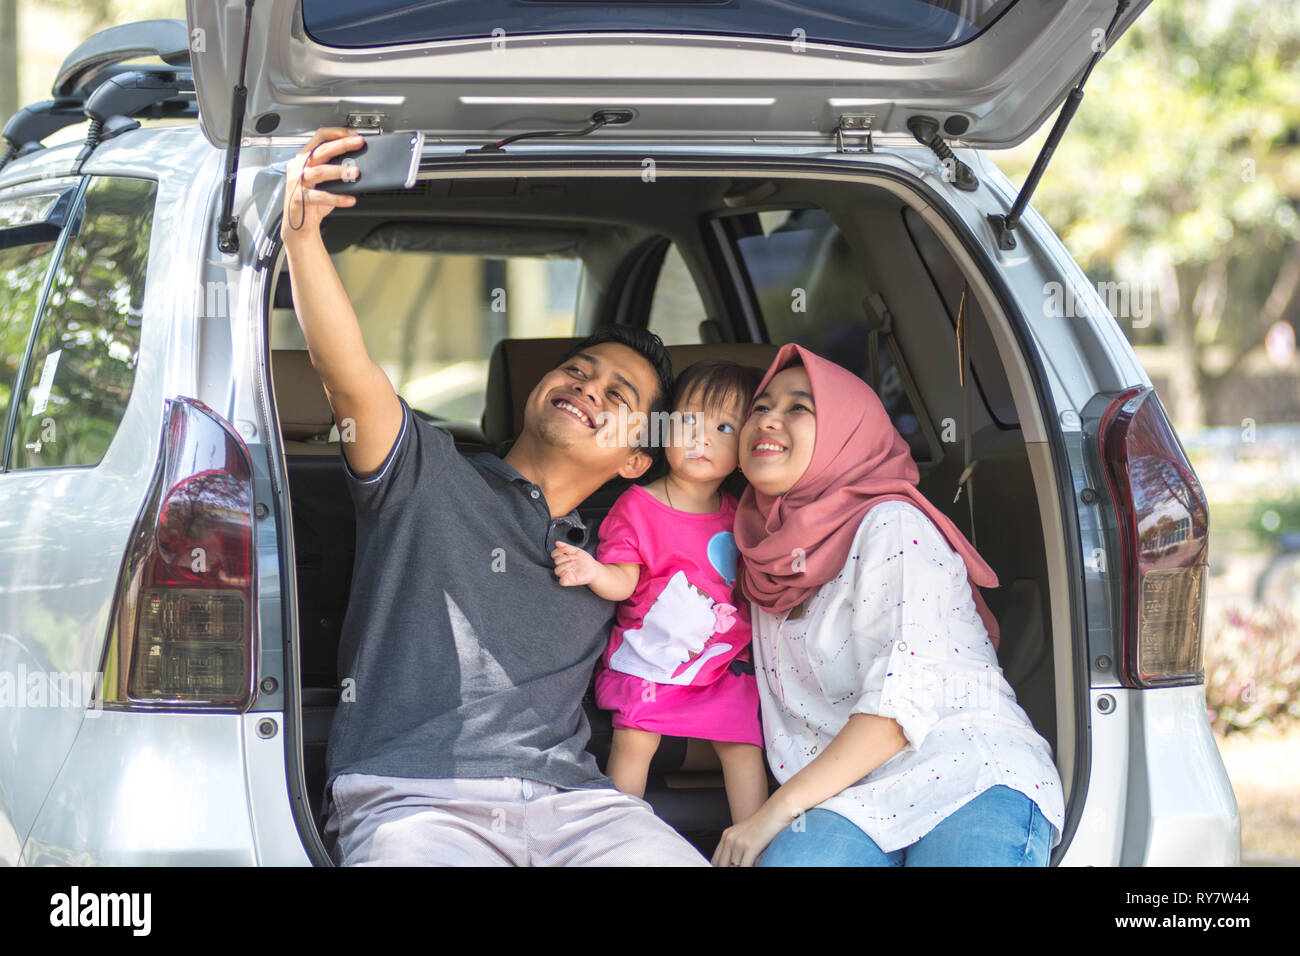 young family , transport, leisure, road trip and people concept - front view of happy man, woman and little girl sitting on trunk of hatchback car and - Stock Image